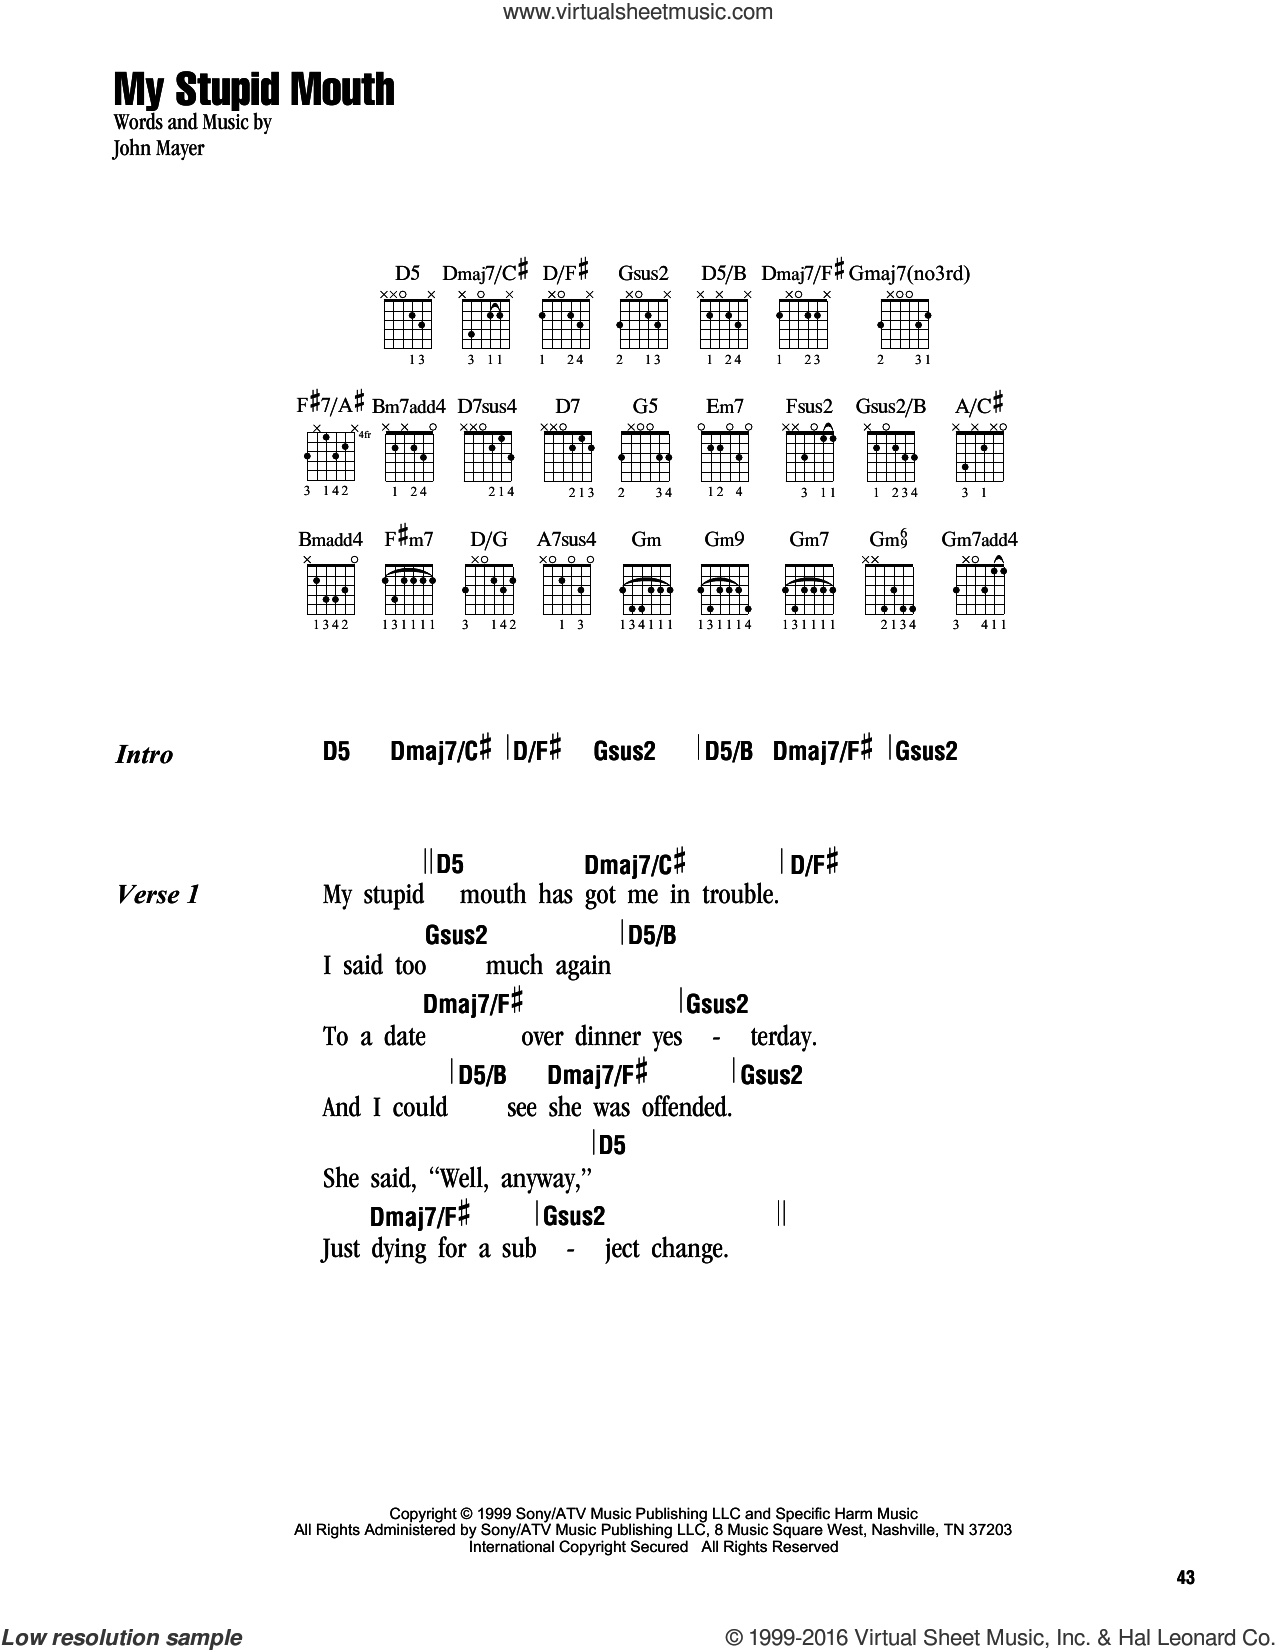 My Stupid Mouth sheet music for guitar (chords) by John Mayer. Score Image Preview.